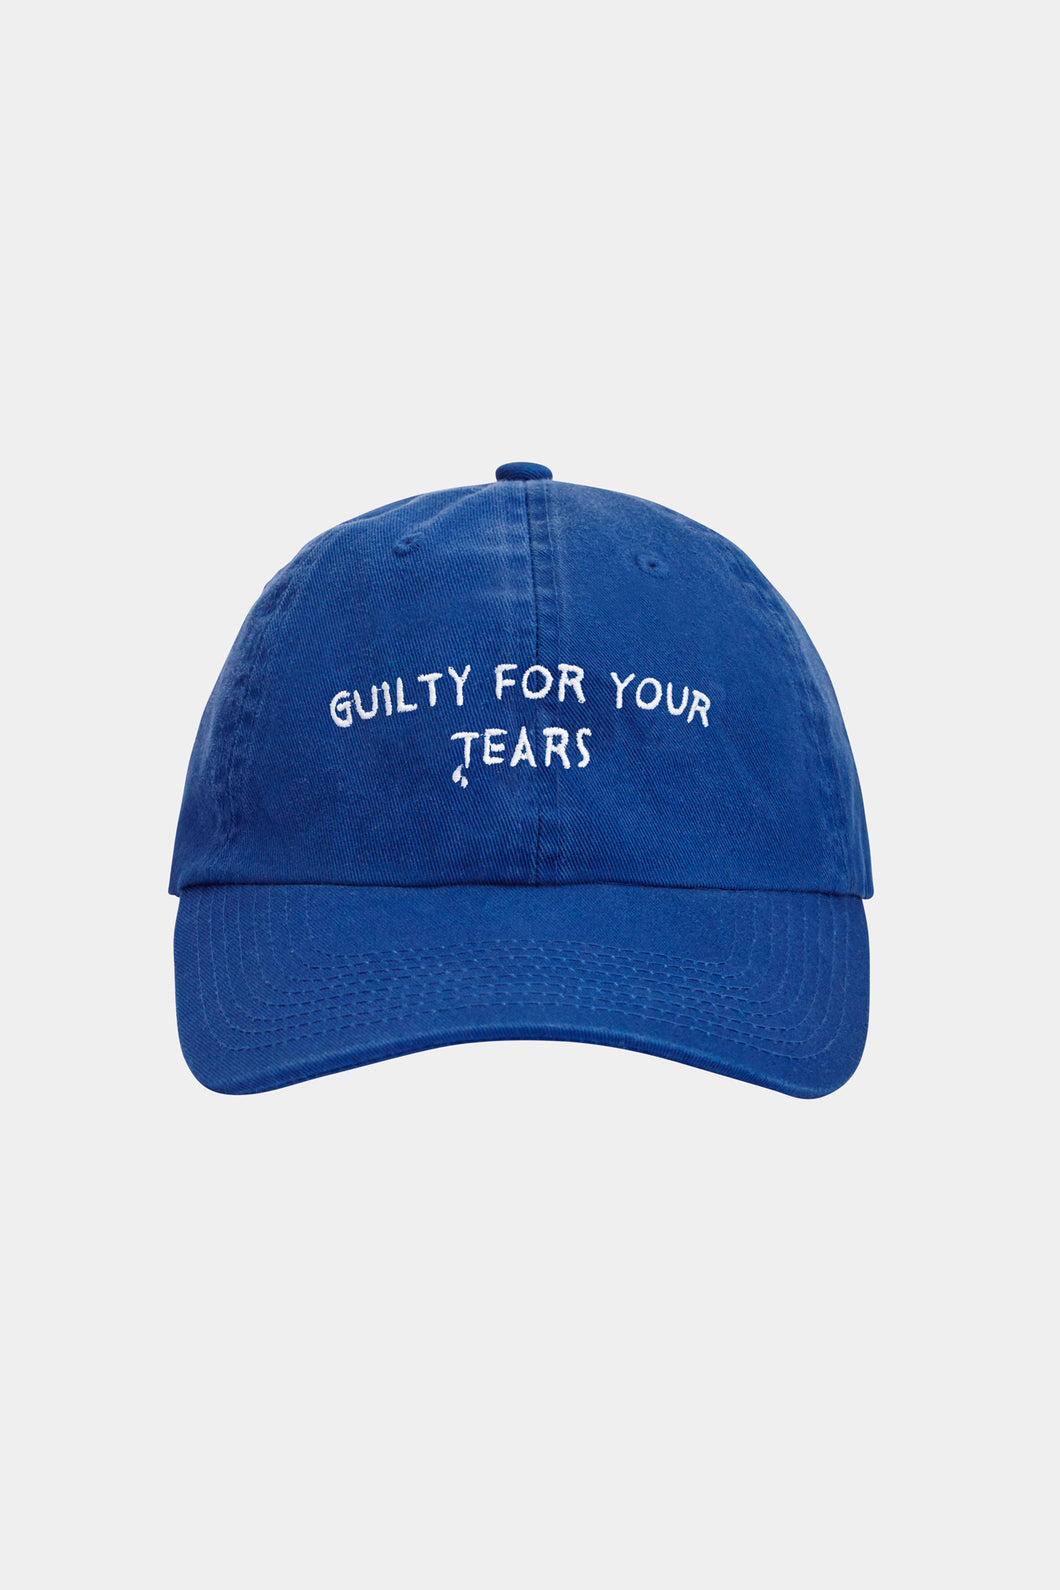 GUILTY FOR YOUR TEARS (BLUE)